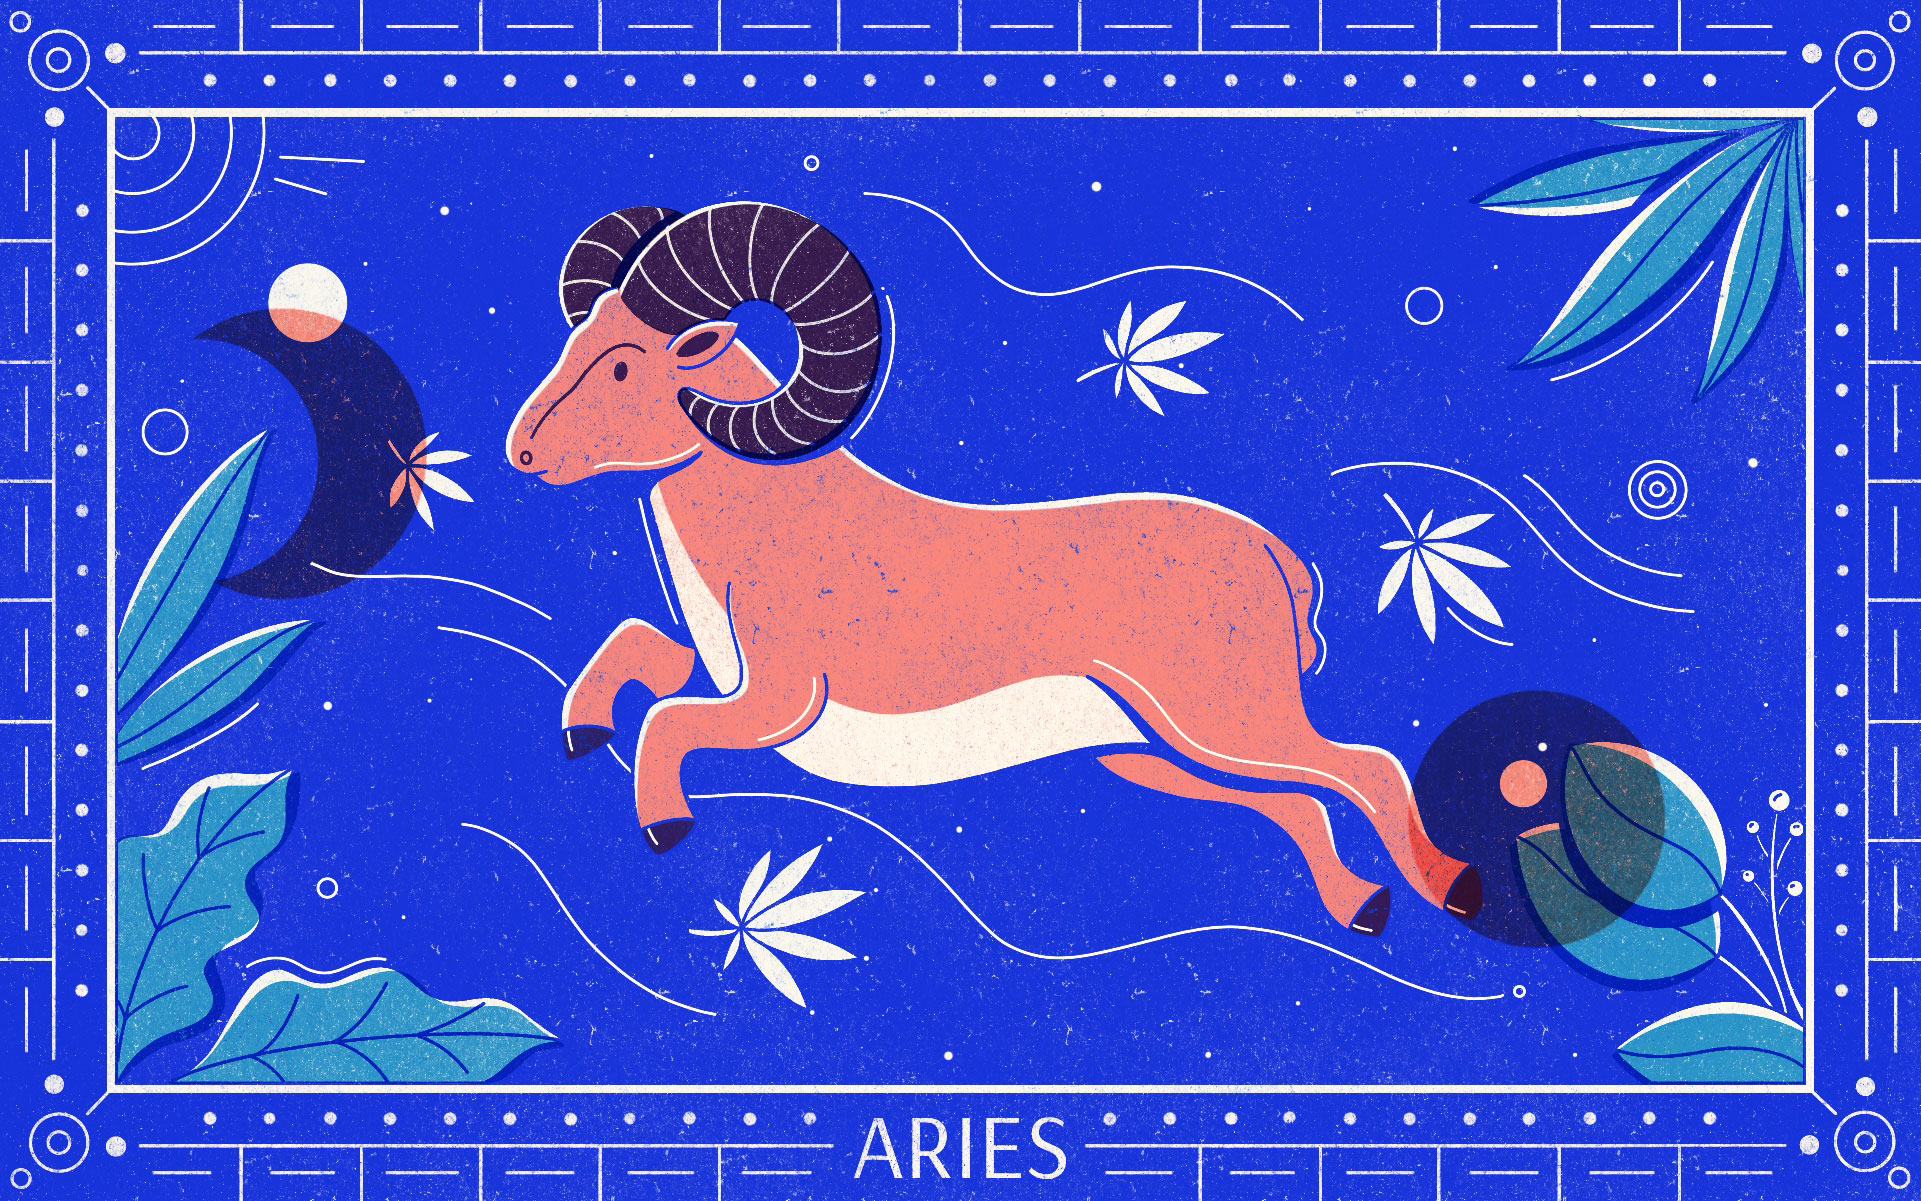 ARIES web Gillian Levine - Star signs and cannabis strains: July 2020 horoscopes